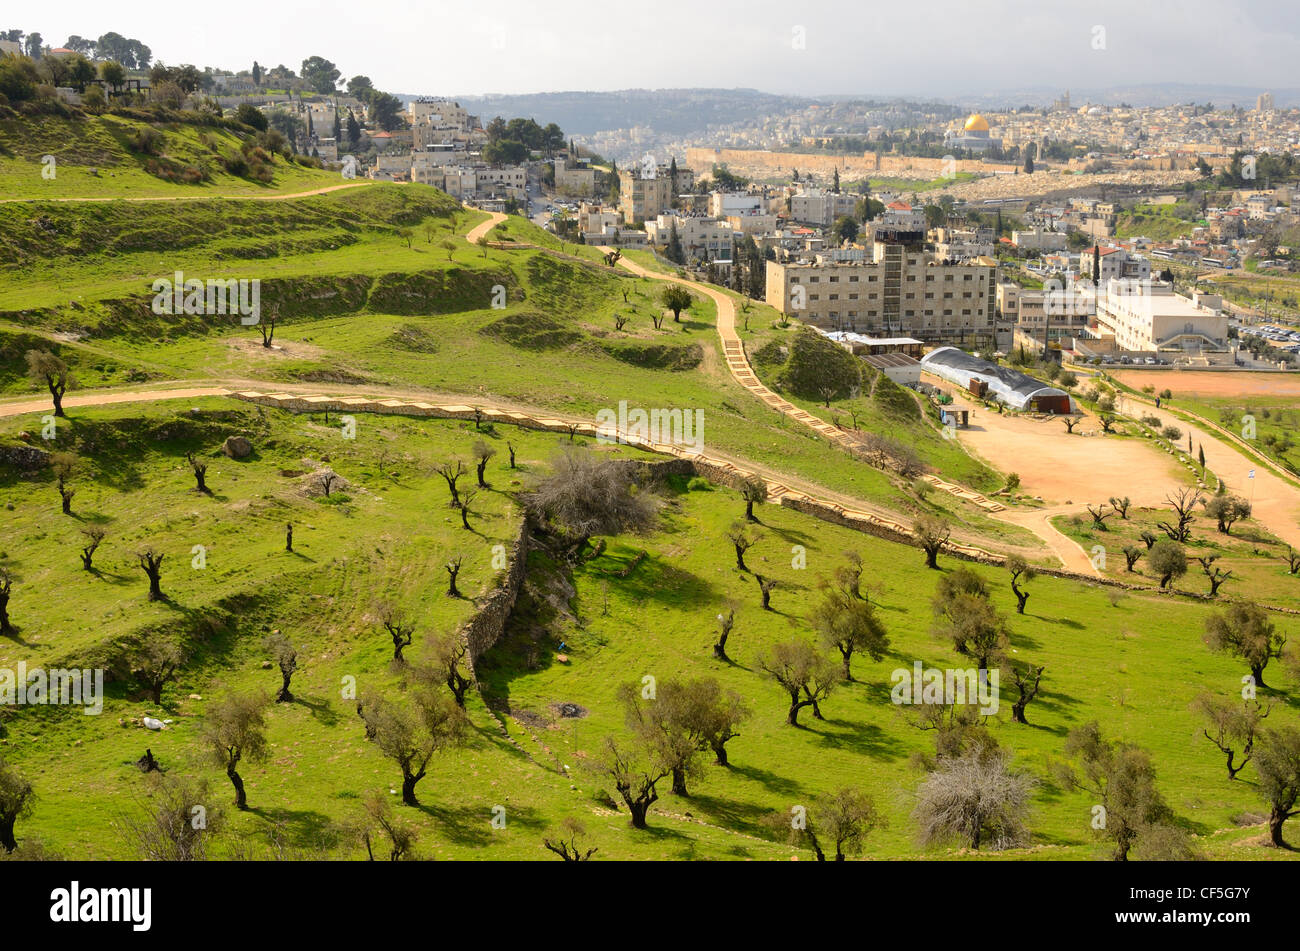 Hillside covered with olive trees in Jerusalem, Israel. - Stock Image